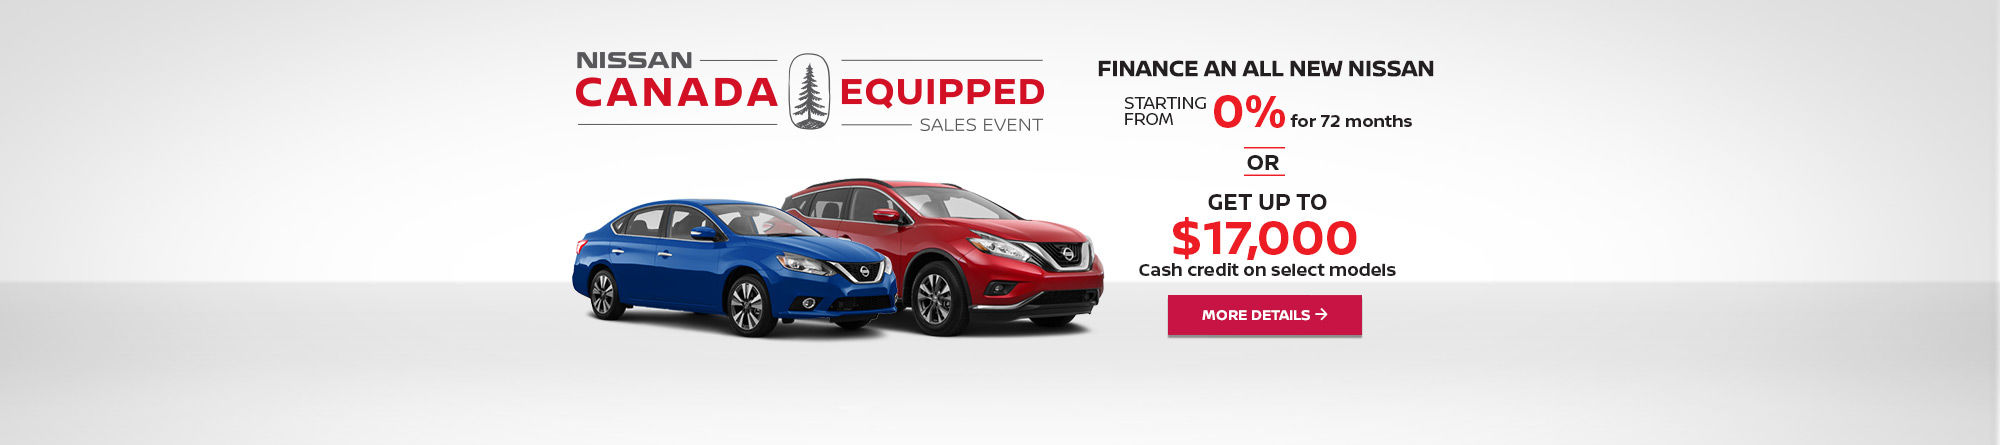 Nissan Canada Equipped Sales Event! (mobile)